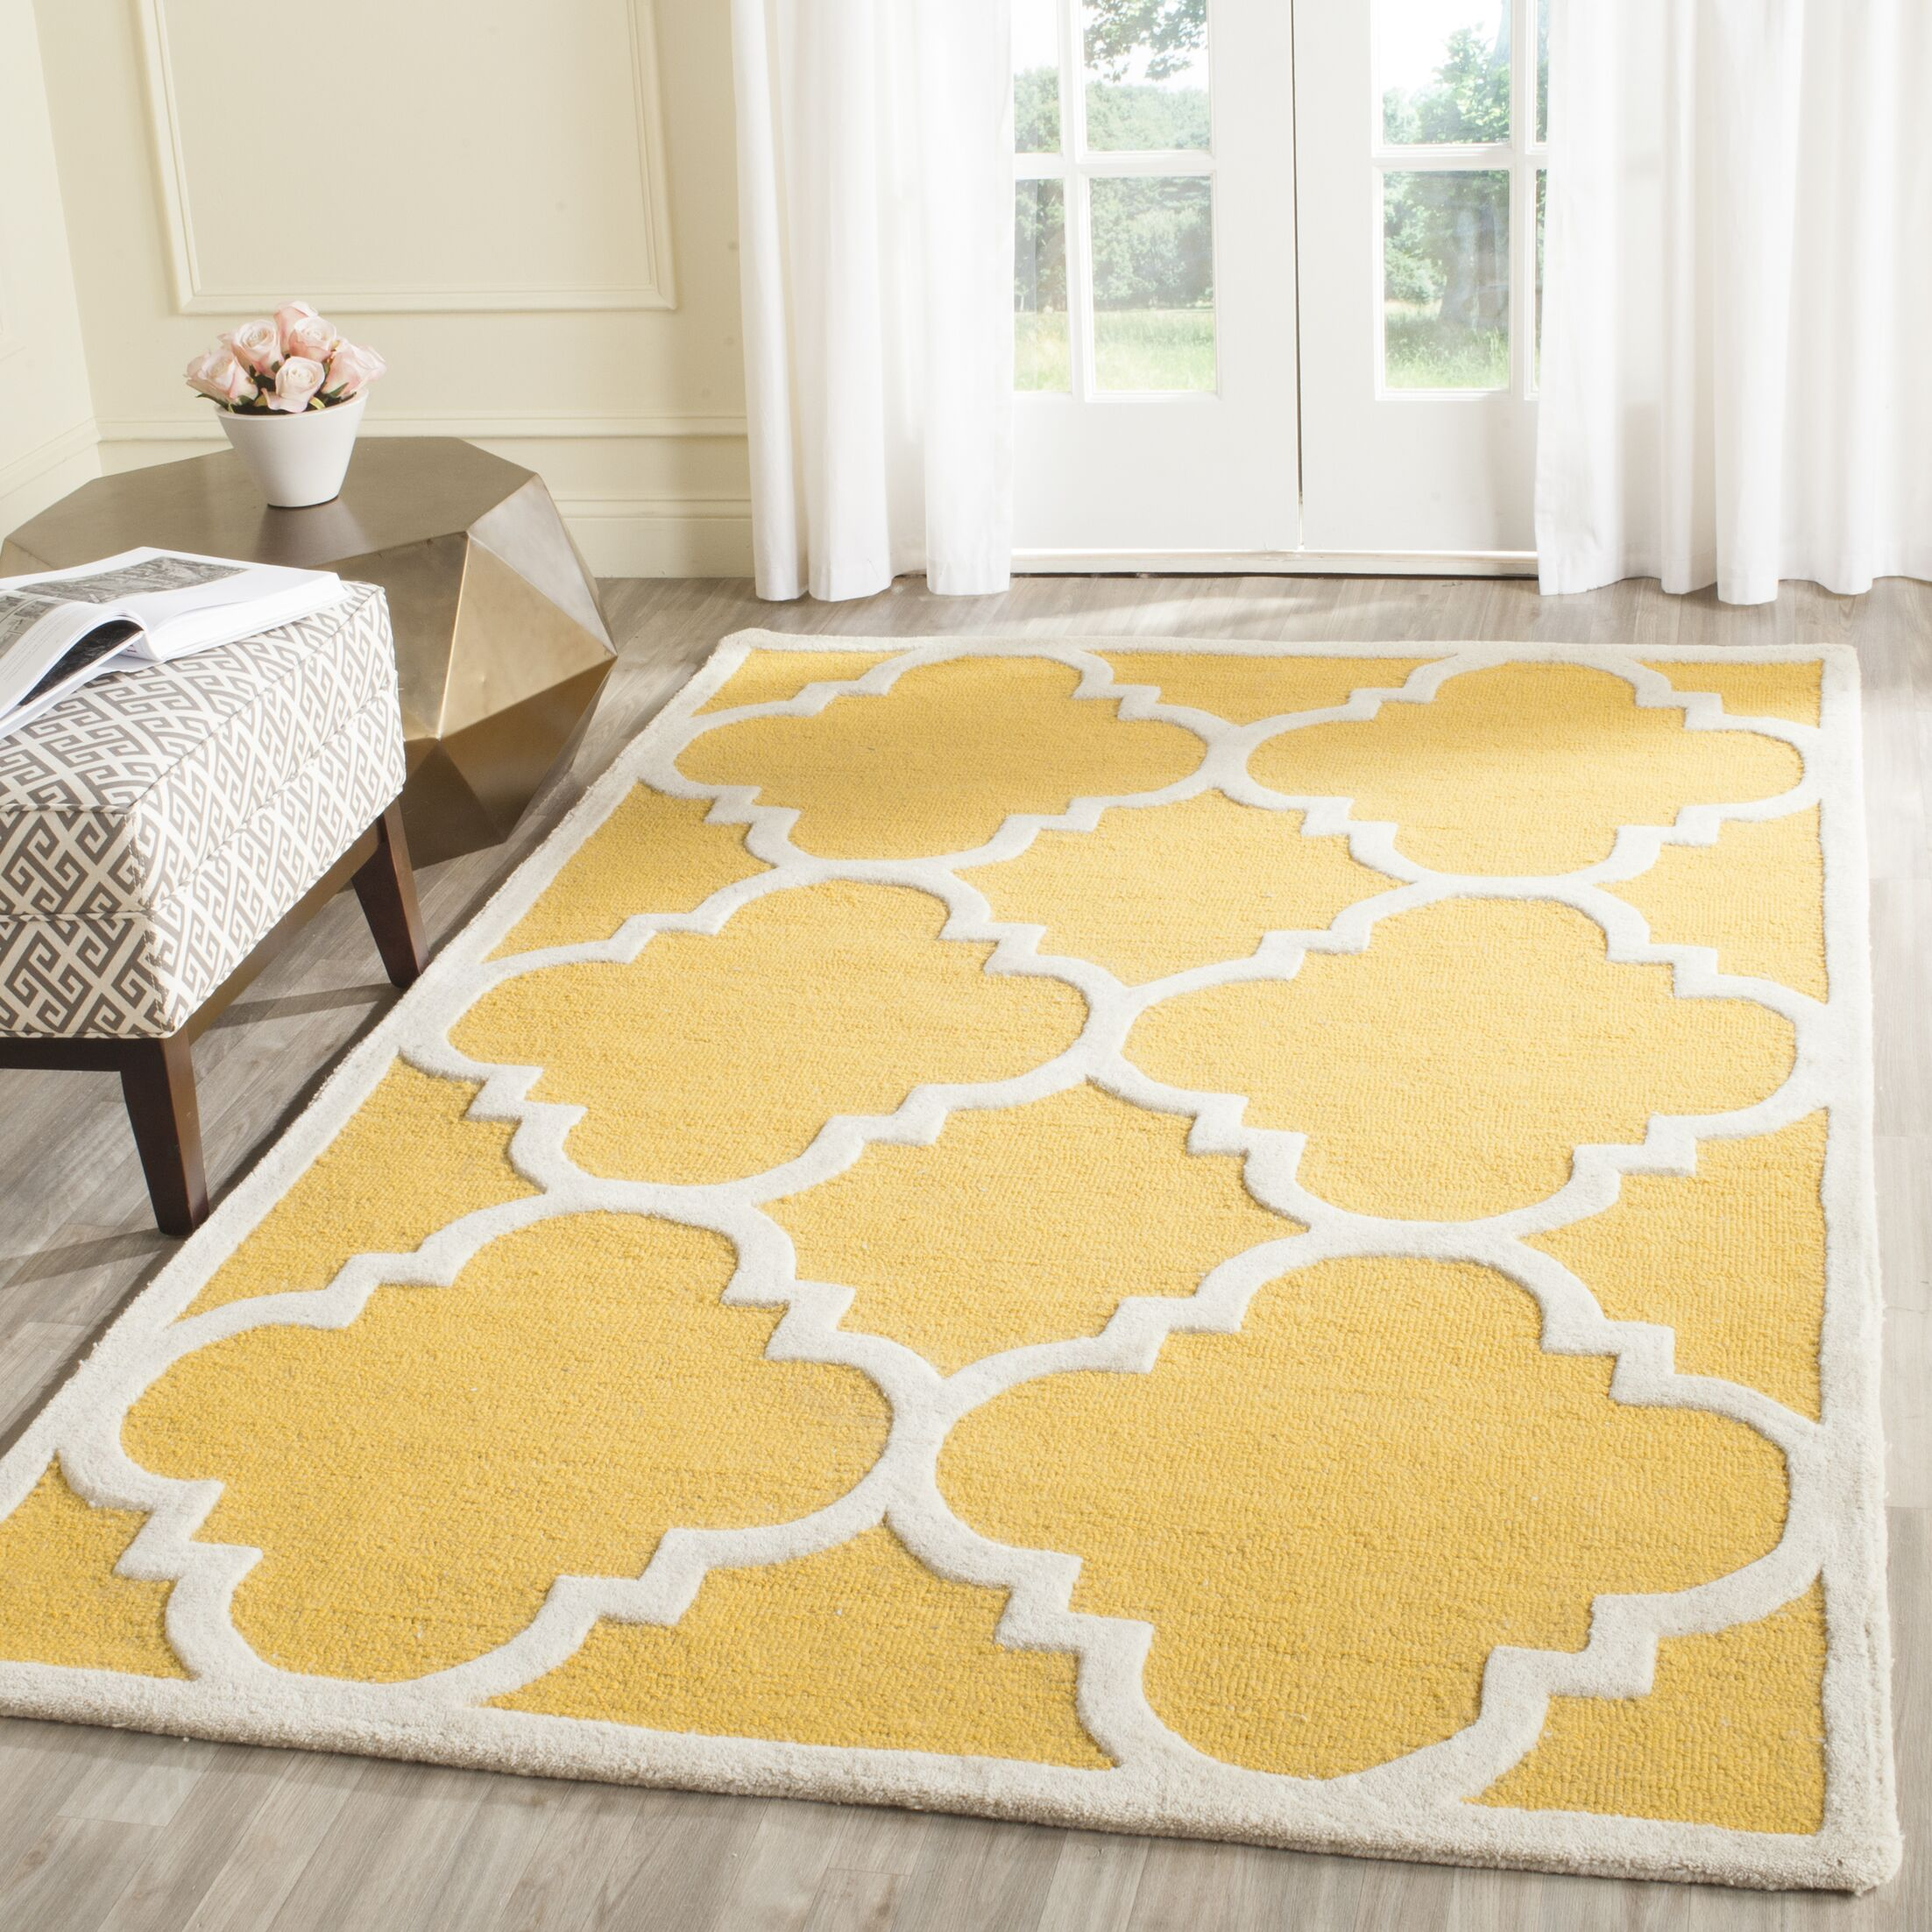 Martins Hand-Tufted Gold/Ivory Area Rug Rug Size: Rectangle 9' x 12'